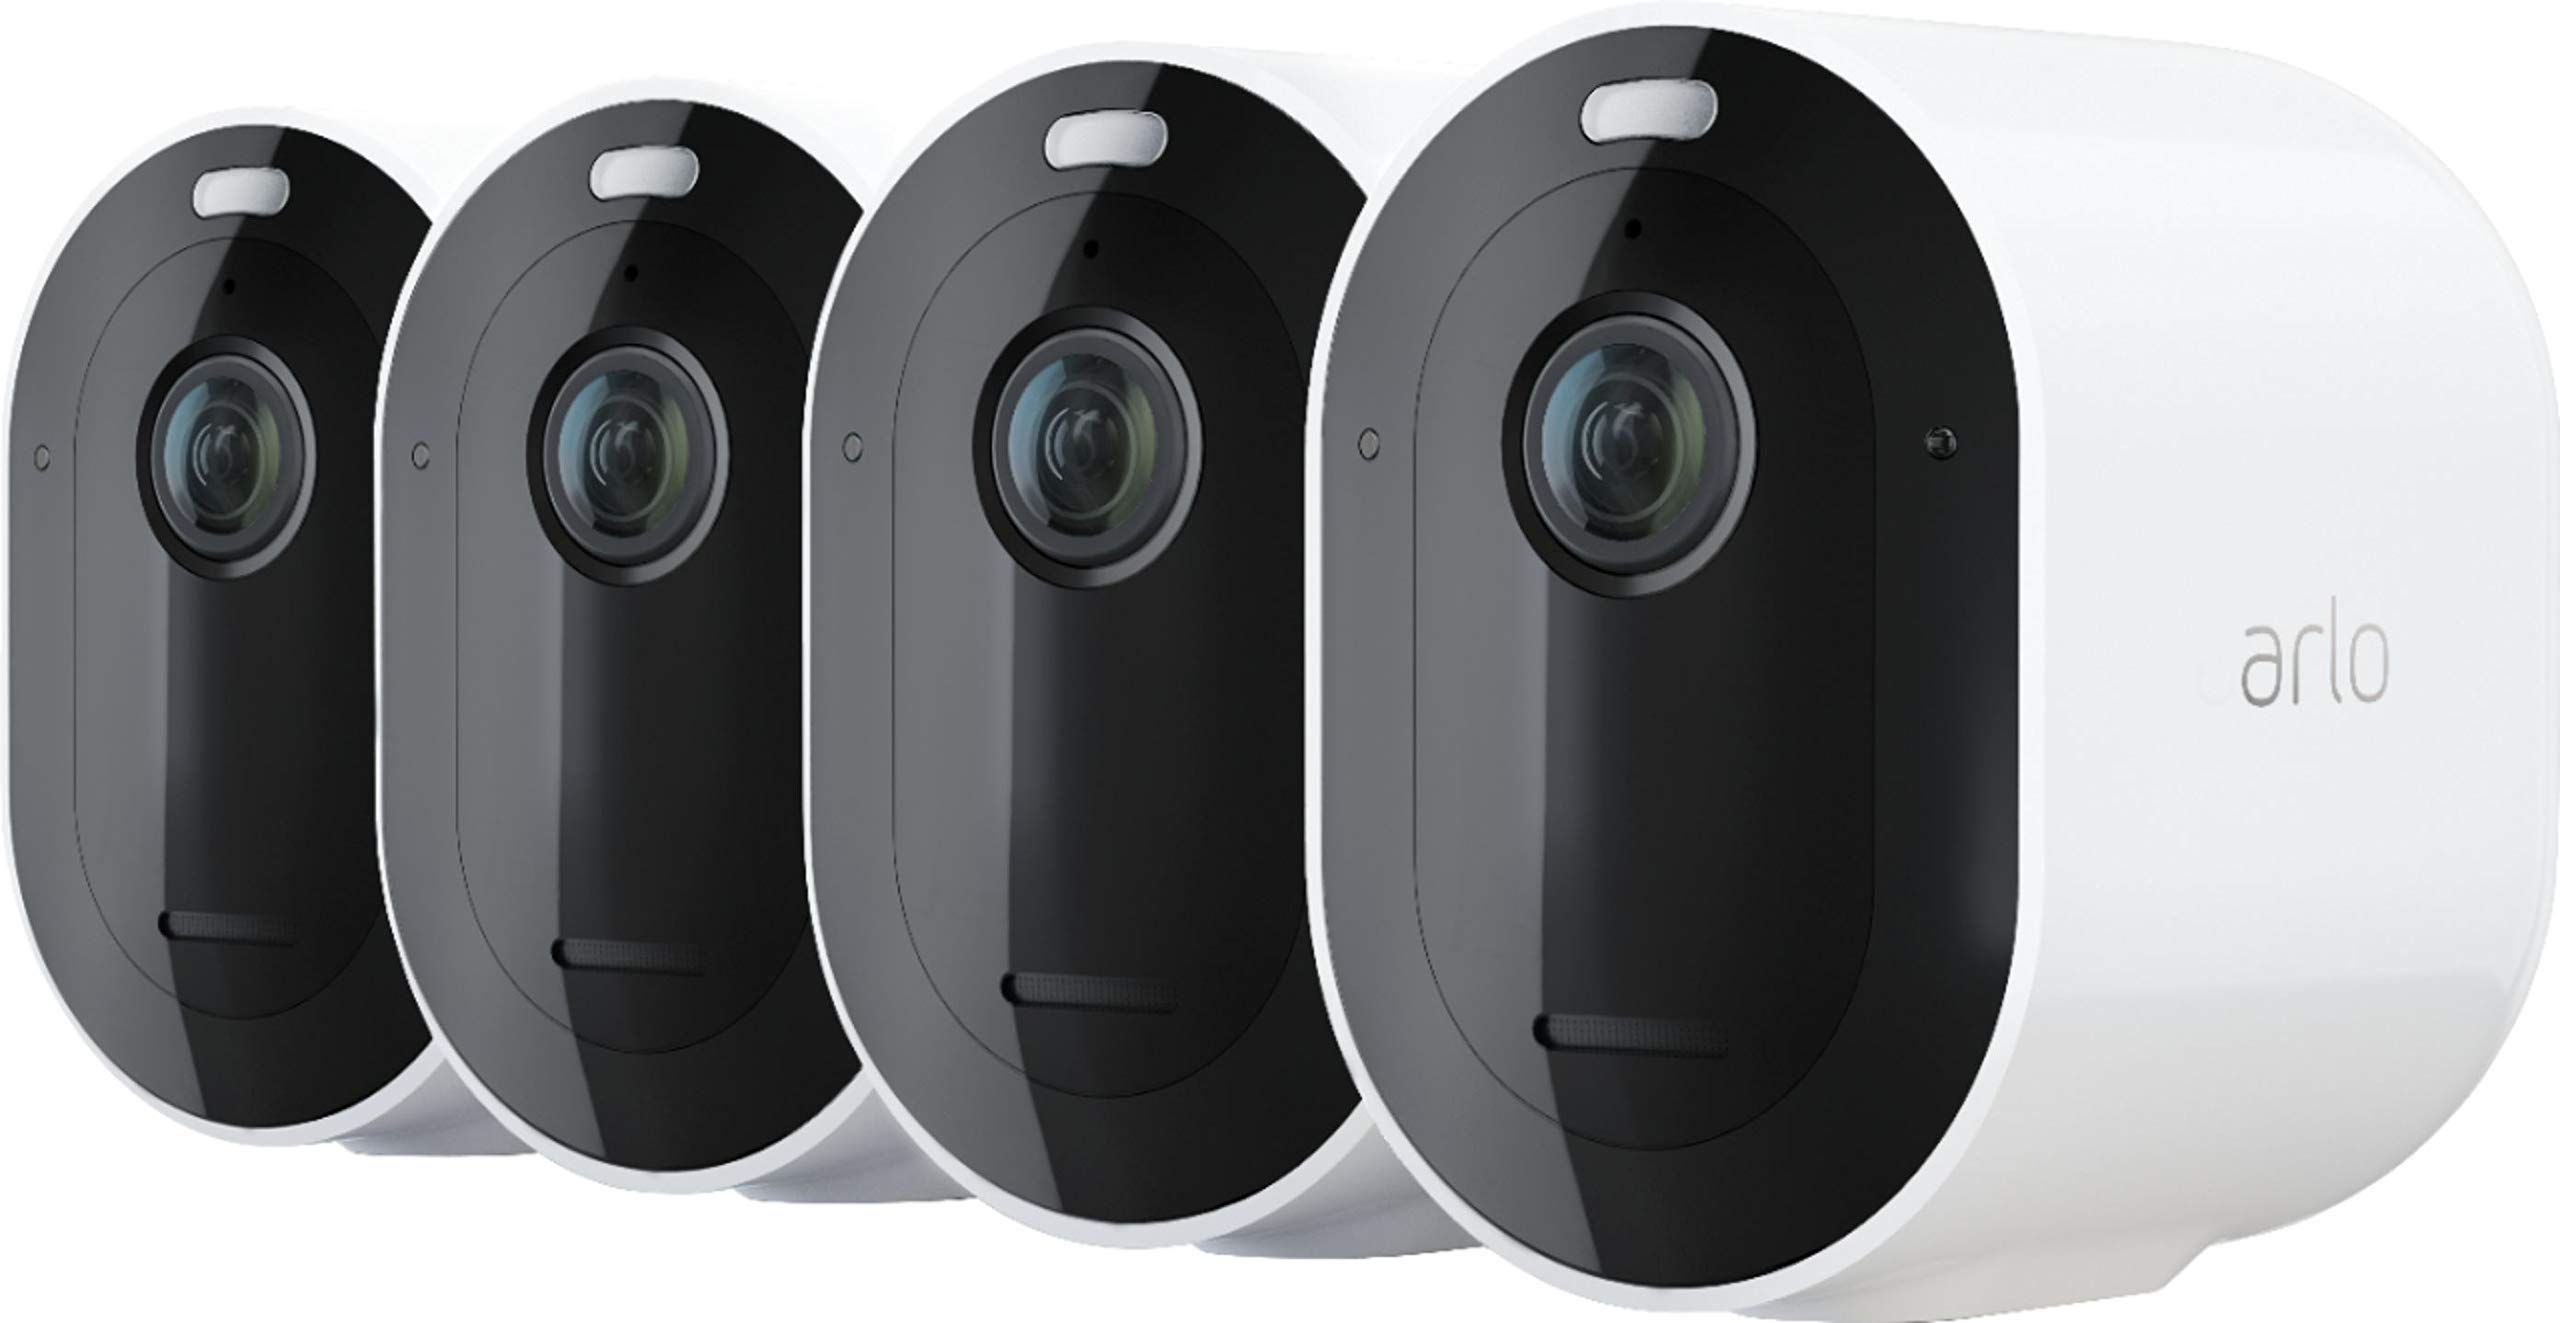 Pro 3 4-Camera Indoor/Outdoor Wire-Free 2K HDR Security Camera System by Arlo Technologies, Inc